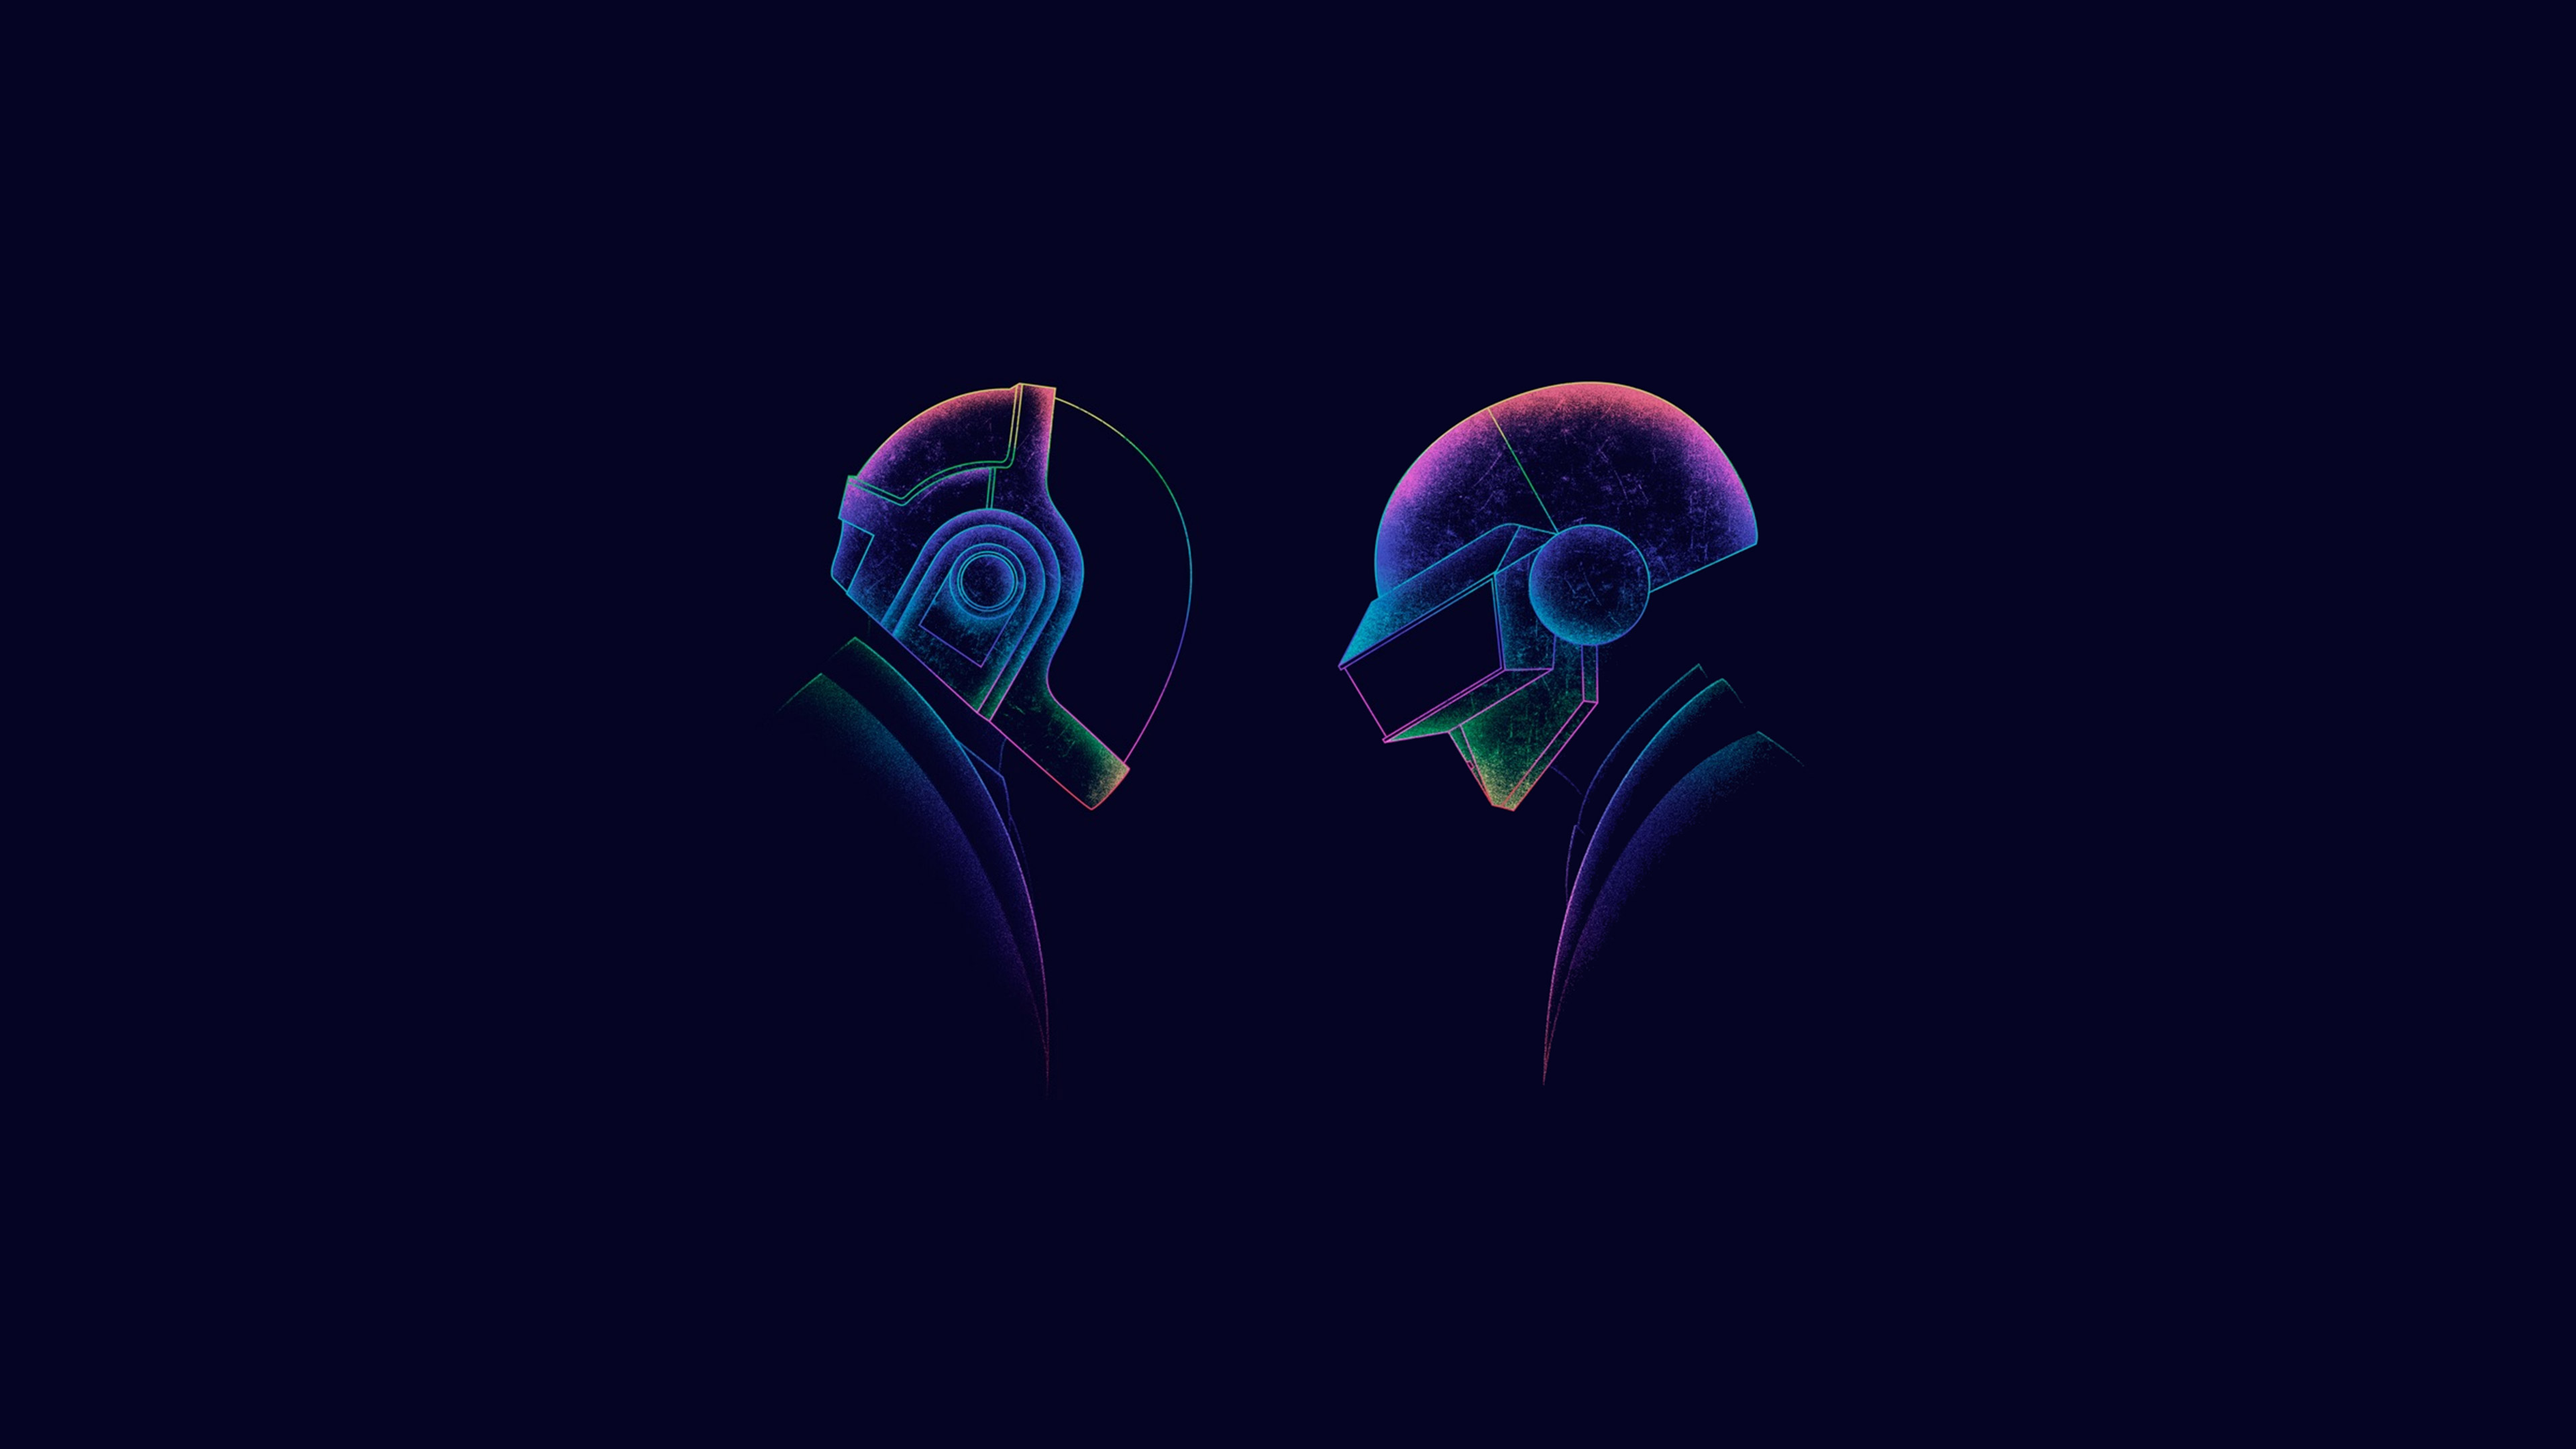 Daft Punk Minimalism 3, HD Music, 4k Wallpapers, Images ...